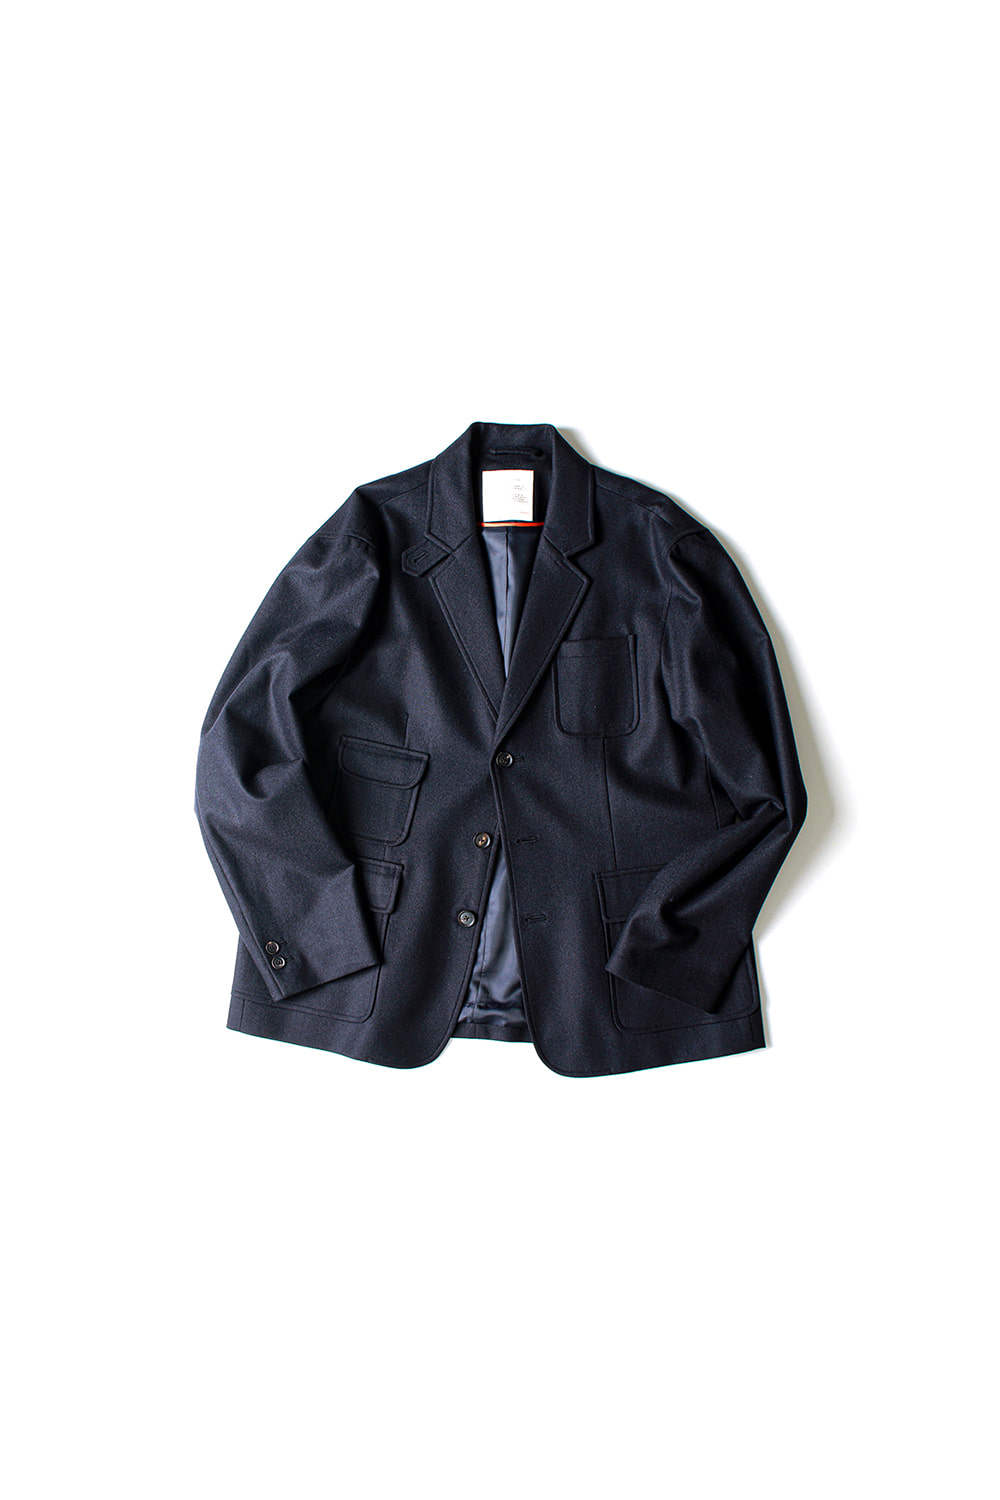 [Ourselves] FINE WOOL SLUMBER JACKET (NV)